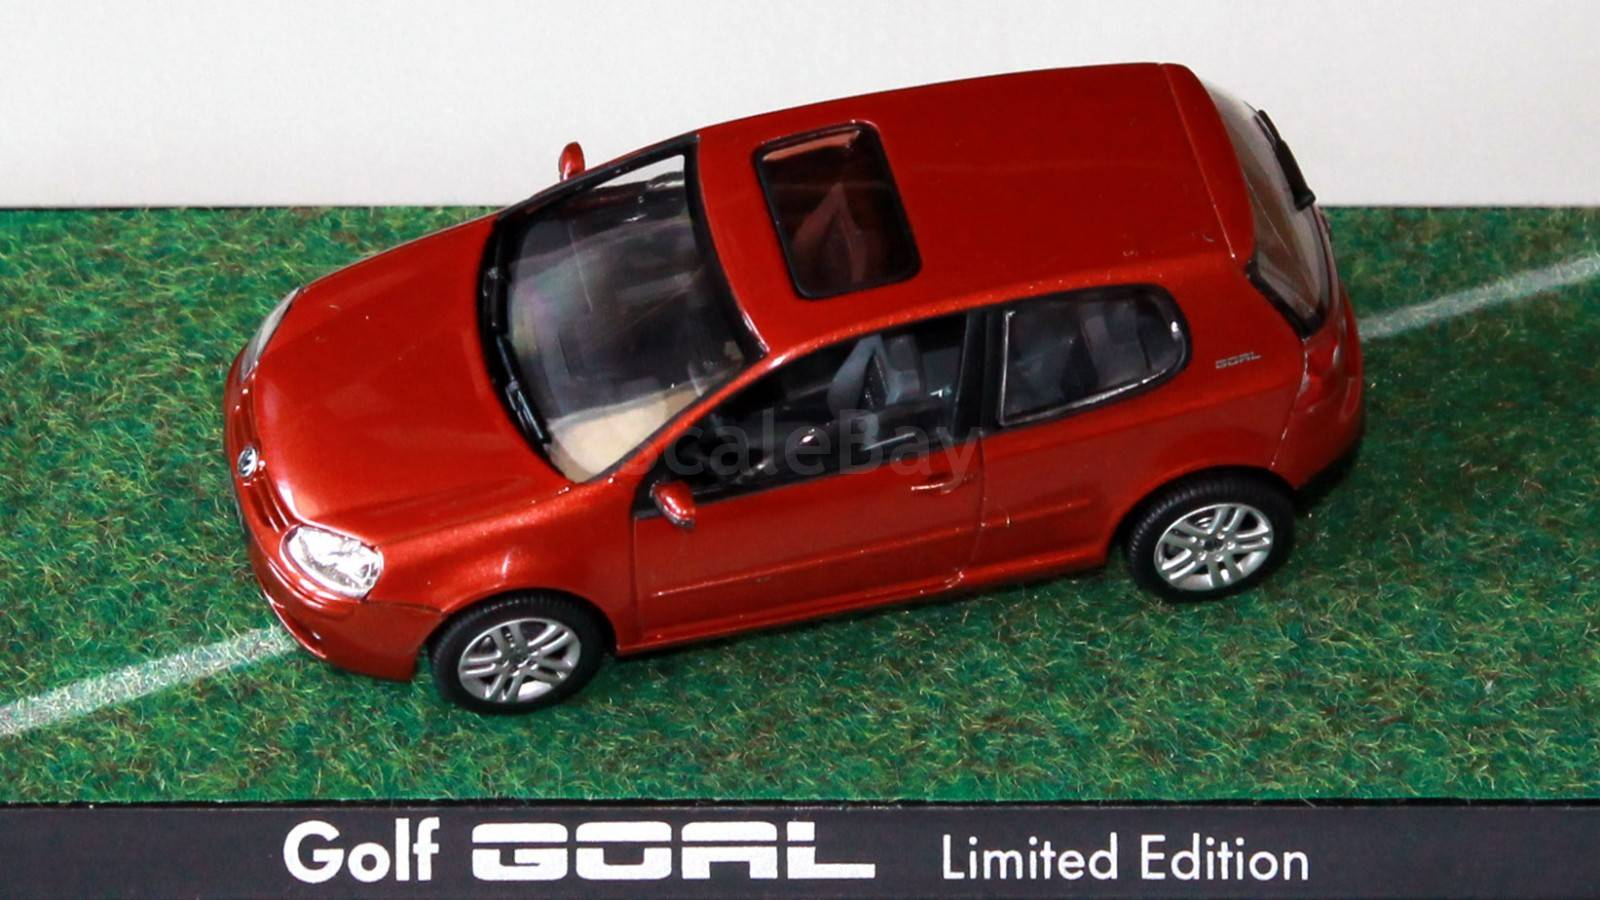 volkswagen golf 5 goal. Black Bedroom Furniture Sets. Home Design Ideas